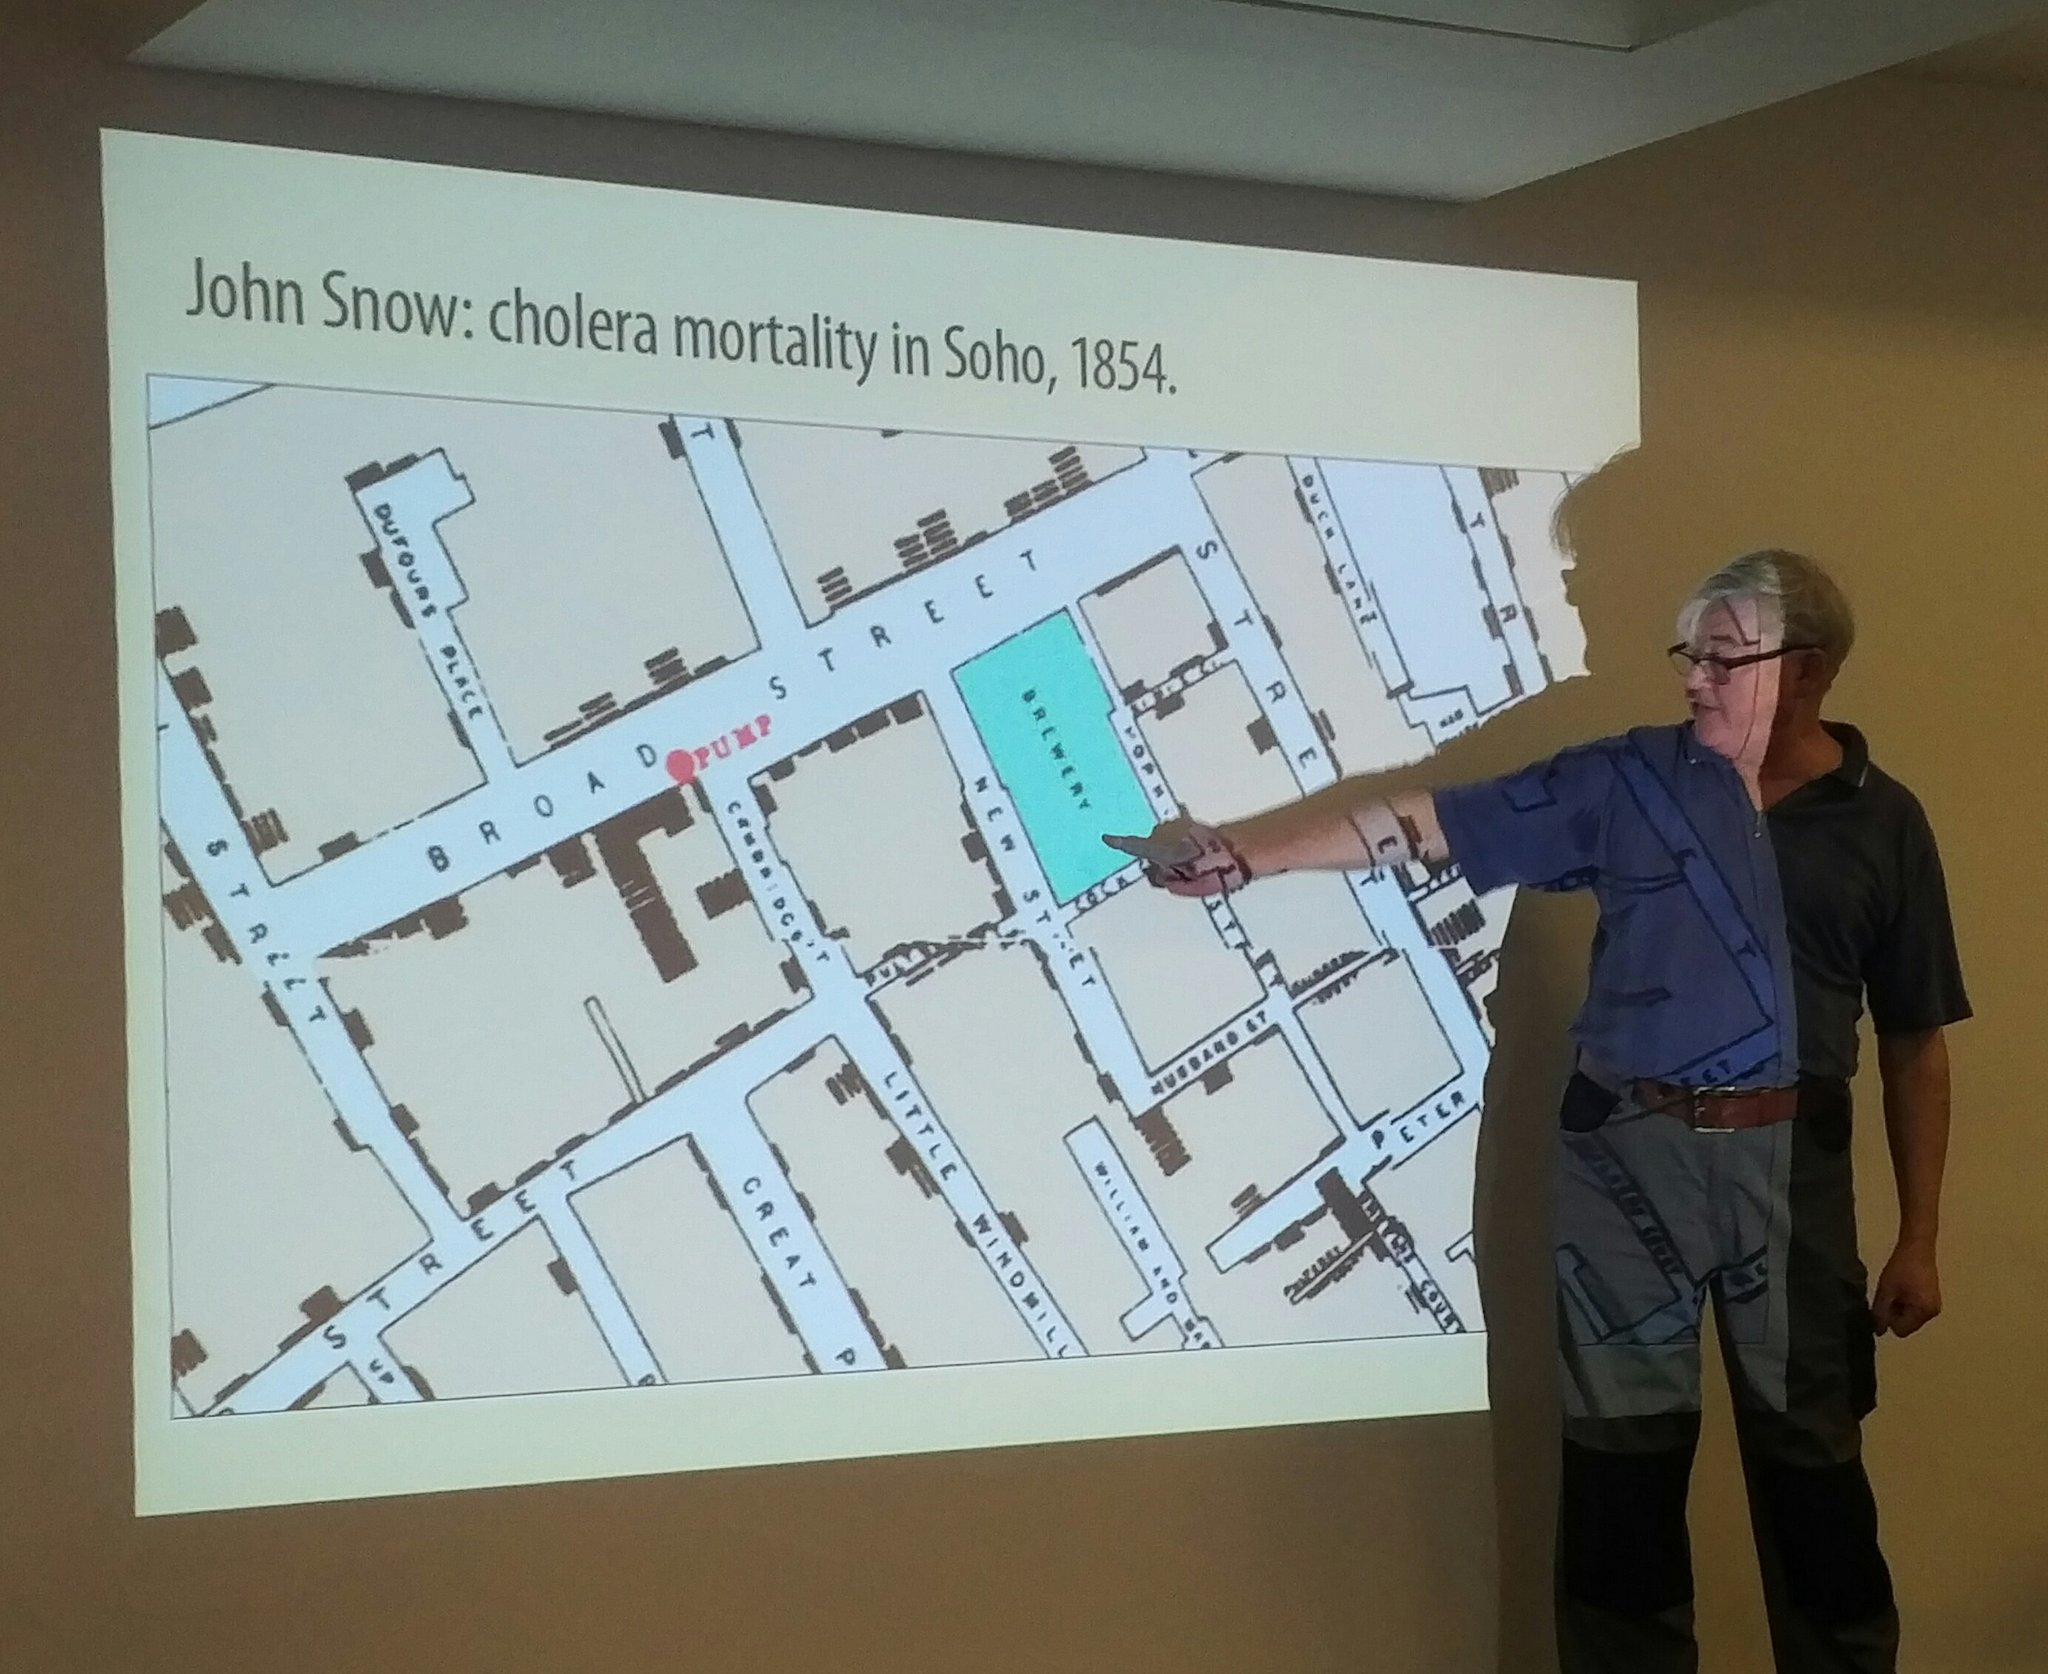 Conrad Taylor indicates the Broad Street brewery on Snow's cholera map. With its own water supply the beer was unaffected. #netikx83 https://t.co/WhUYQ6wnNr